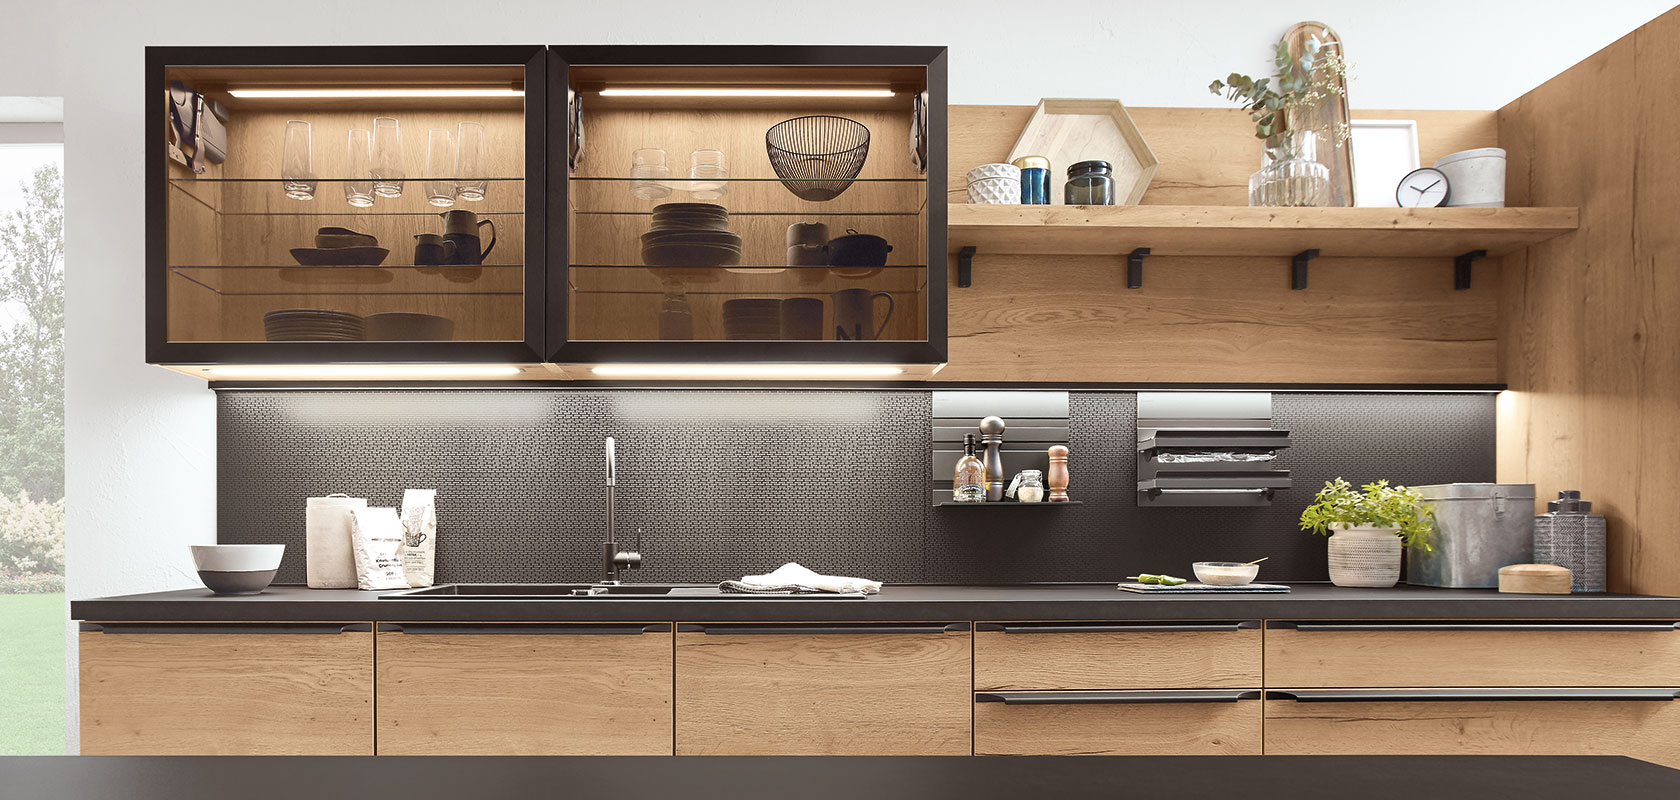 Ideas and individualised recess design for your nobilia kitchen.